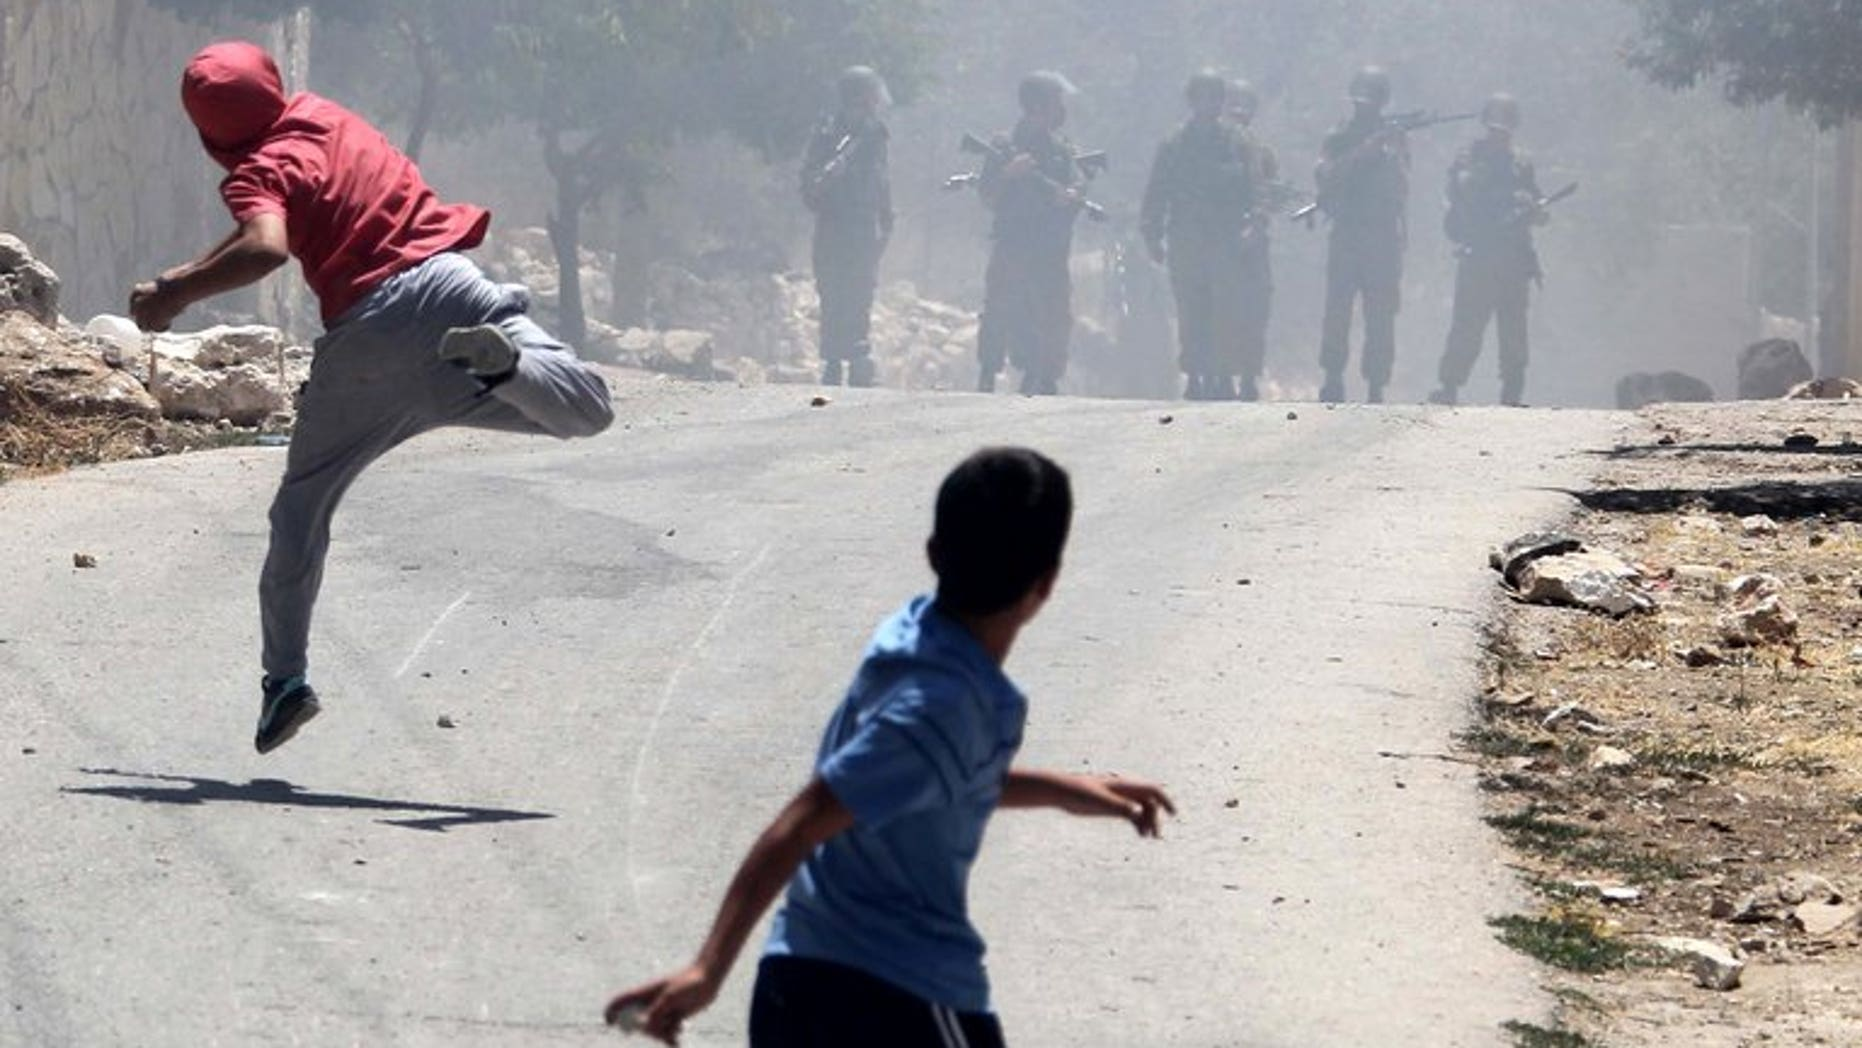 Palestinian protesters throw stones towards Israeli security forces during clashes near the West Bank city of Nablus, on June 28, 2013. A Palestinian teenager was knocked down and killed by an Israeli military jeep during overnight clashes in a village in the southern West Bank, Palestinian police and witnesses told AFP.